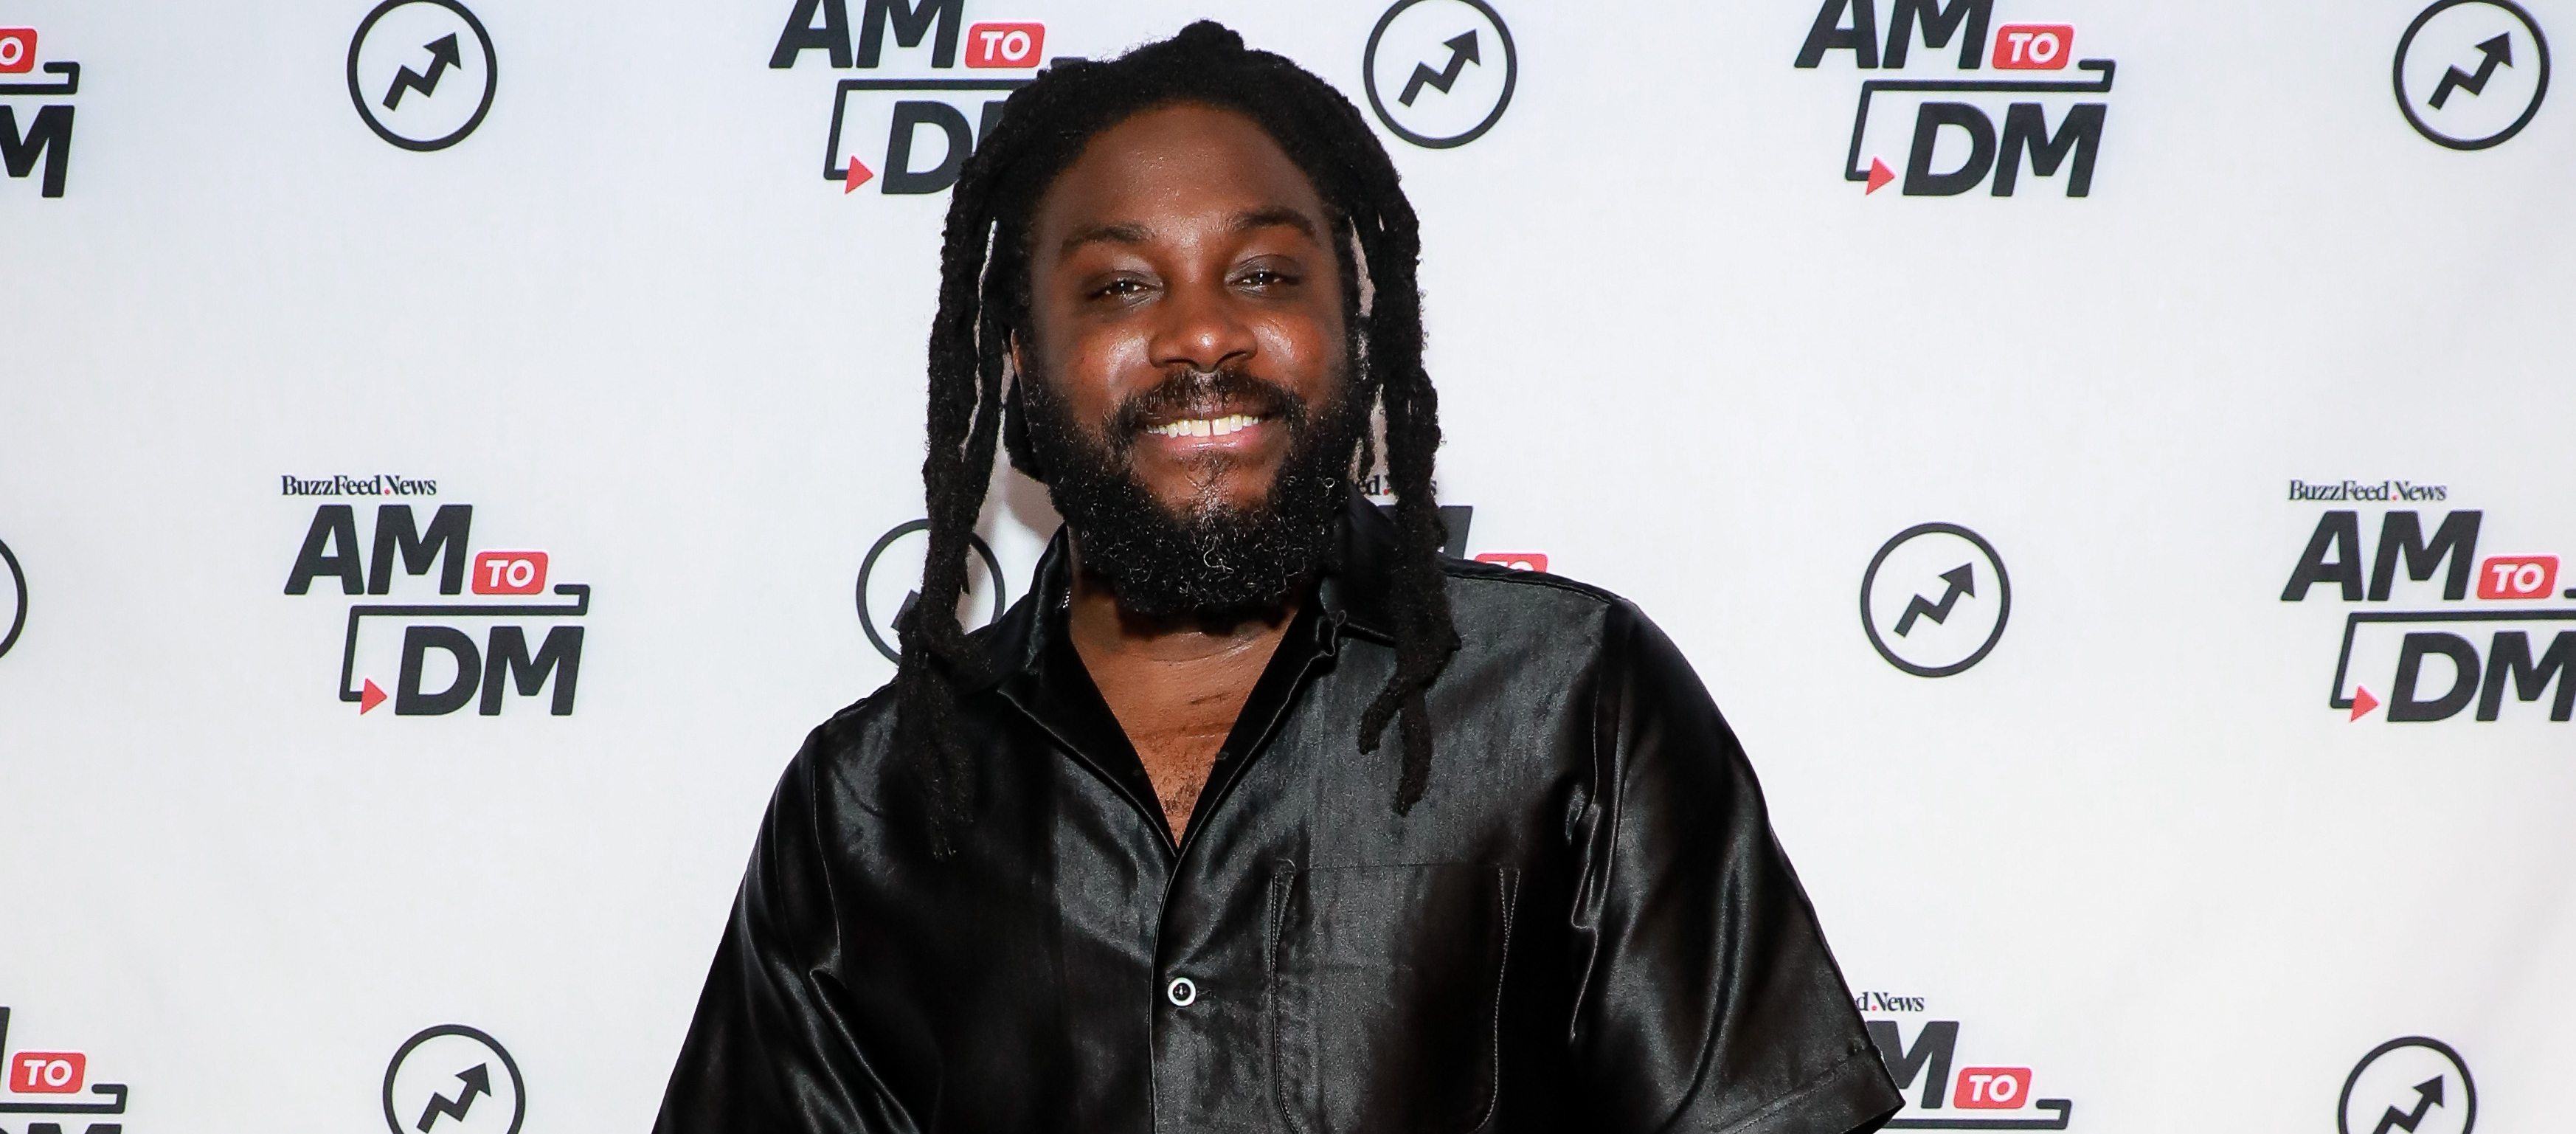 Jason Reynolds Buys His Books, Gives Them Away